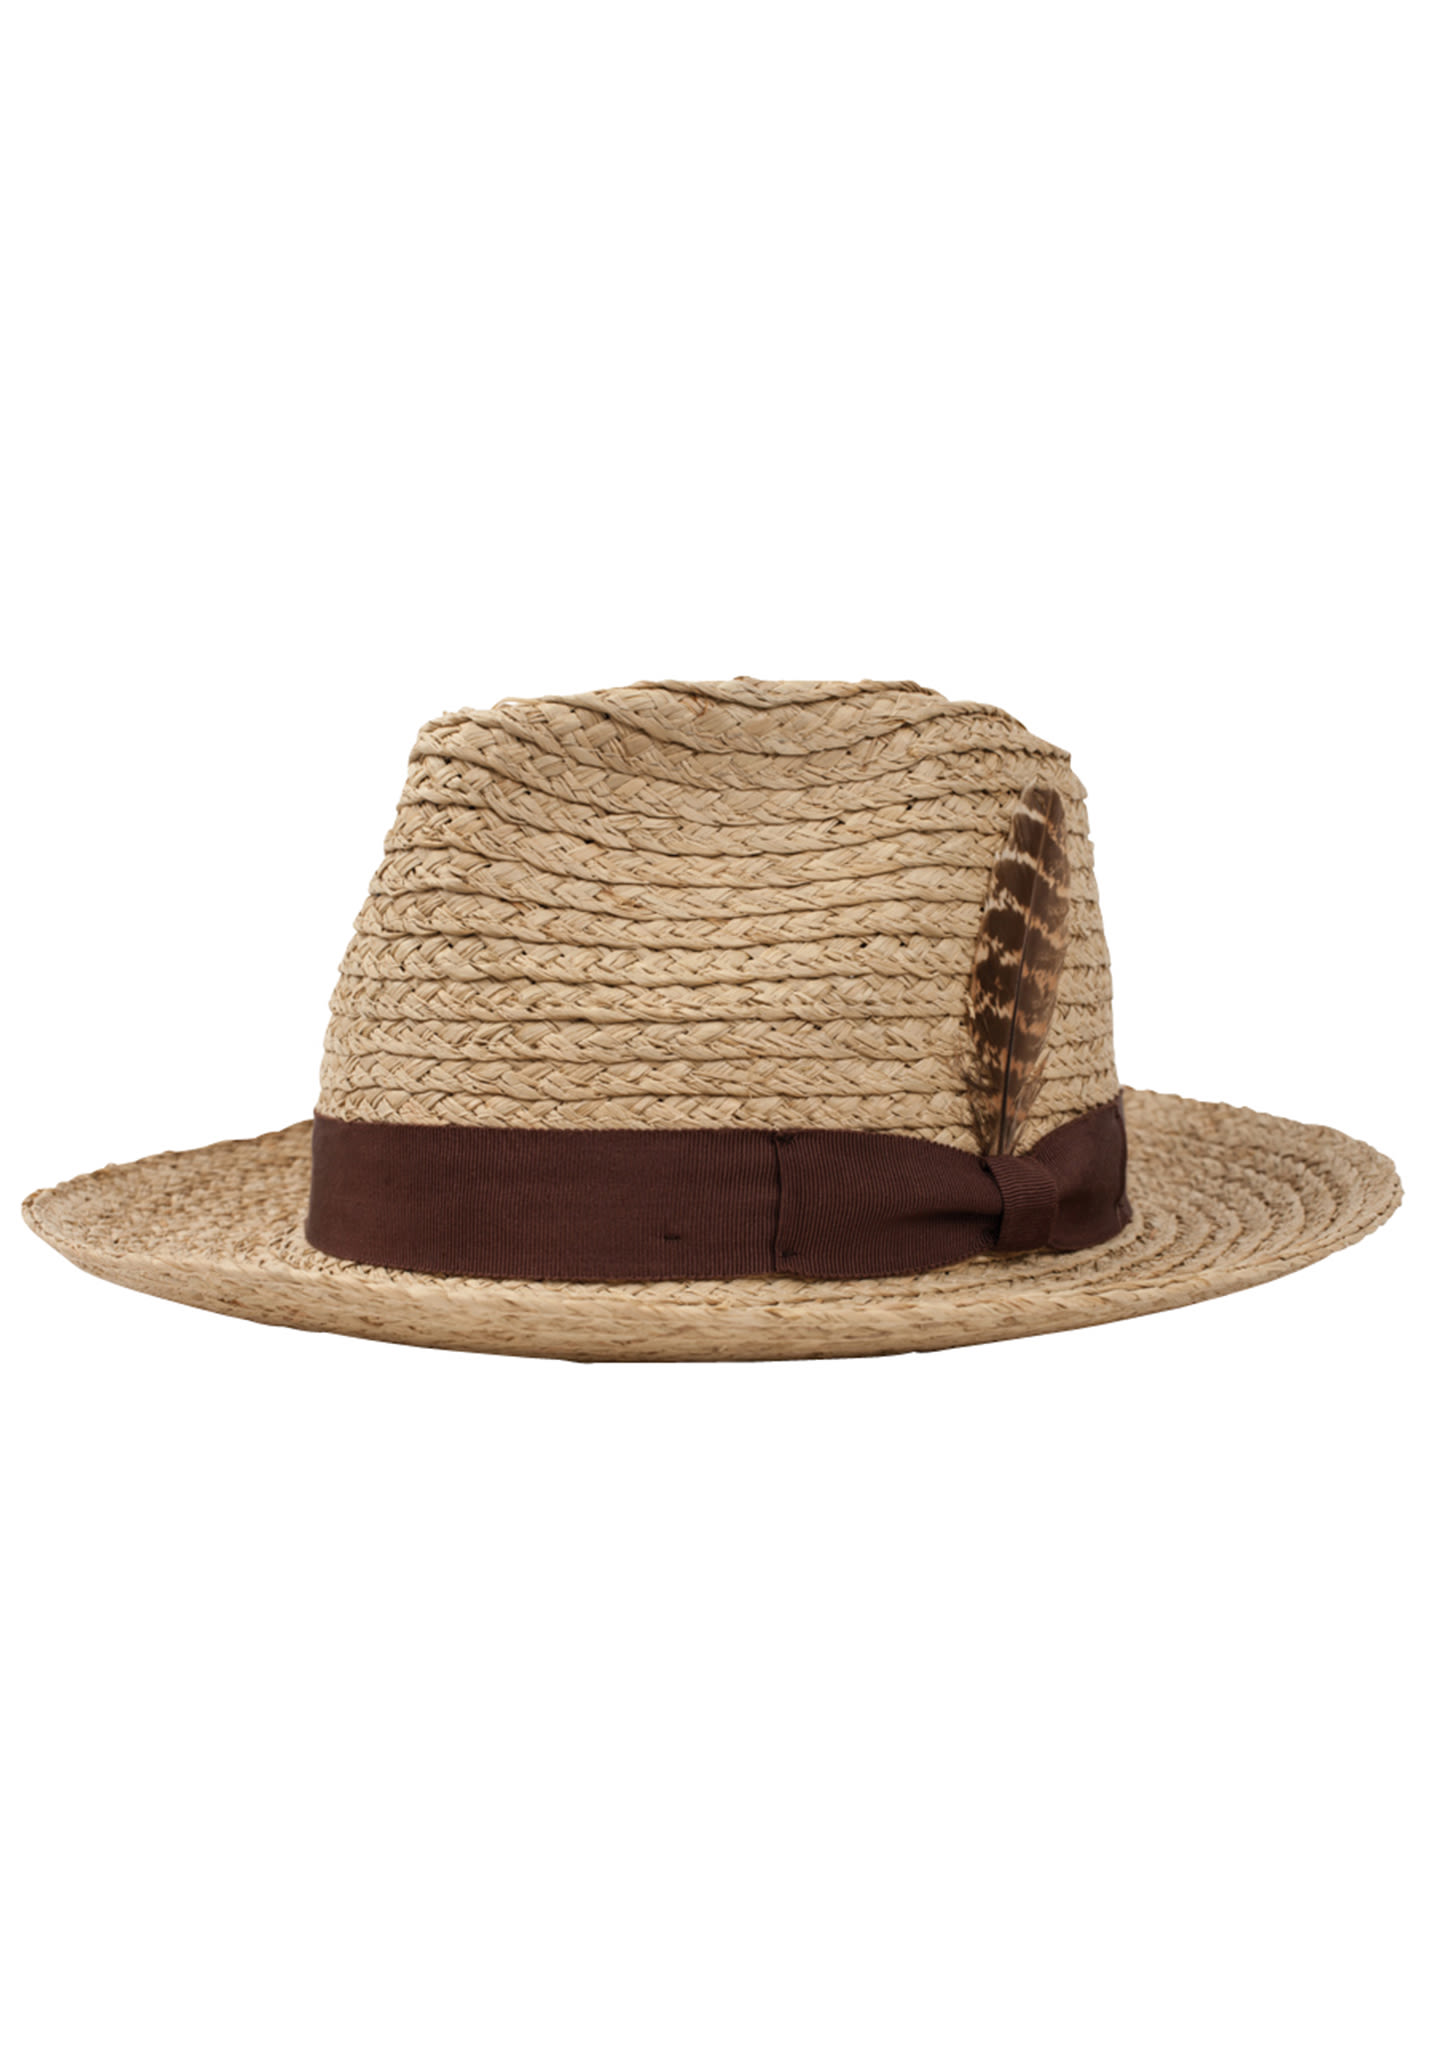 592e4278a55 BRIXTON Crosby - Hat - Brown - Planet Sports